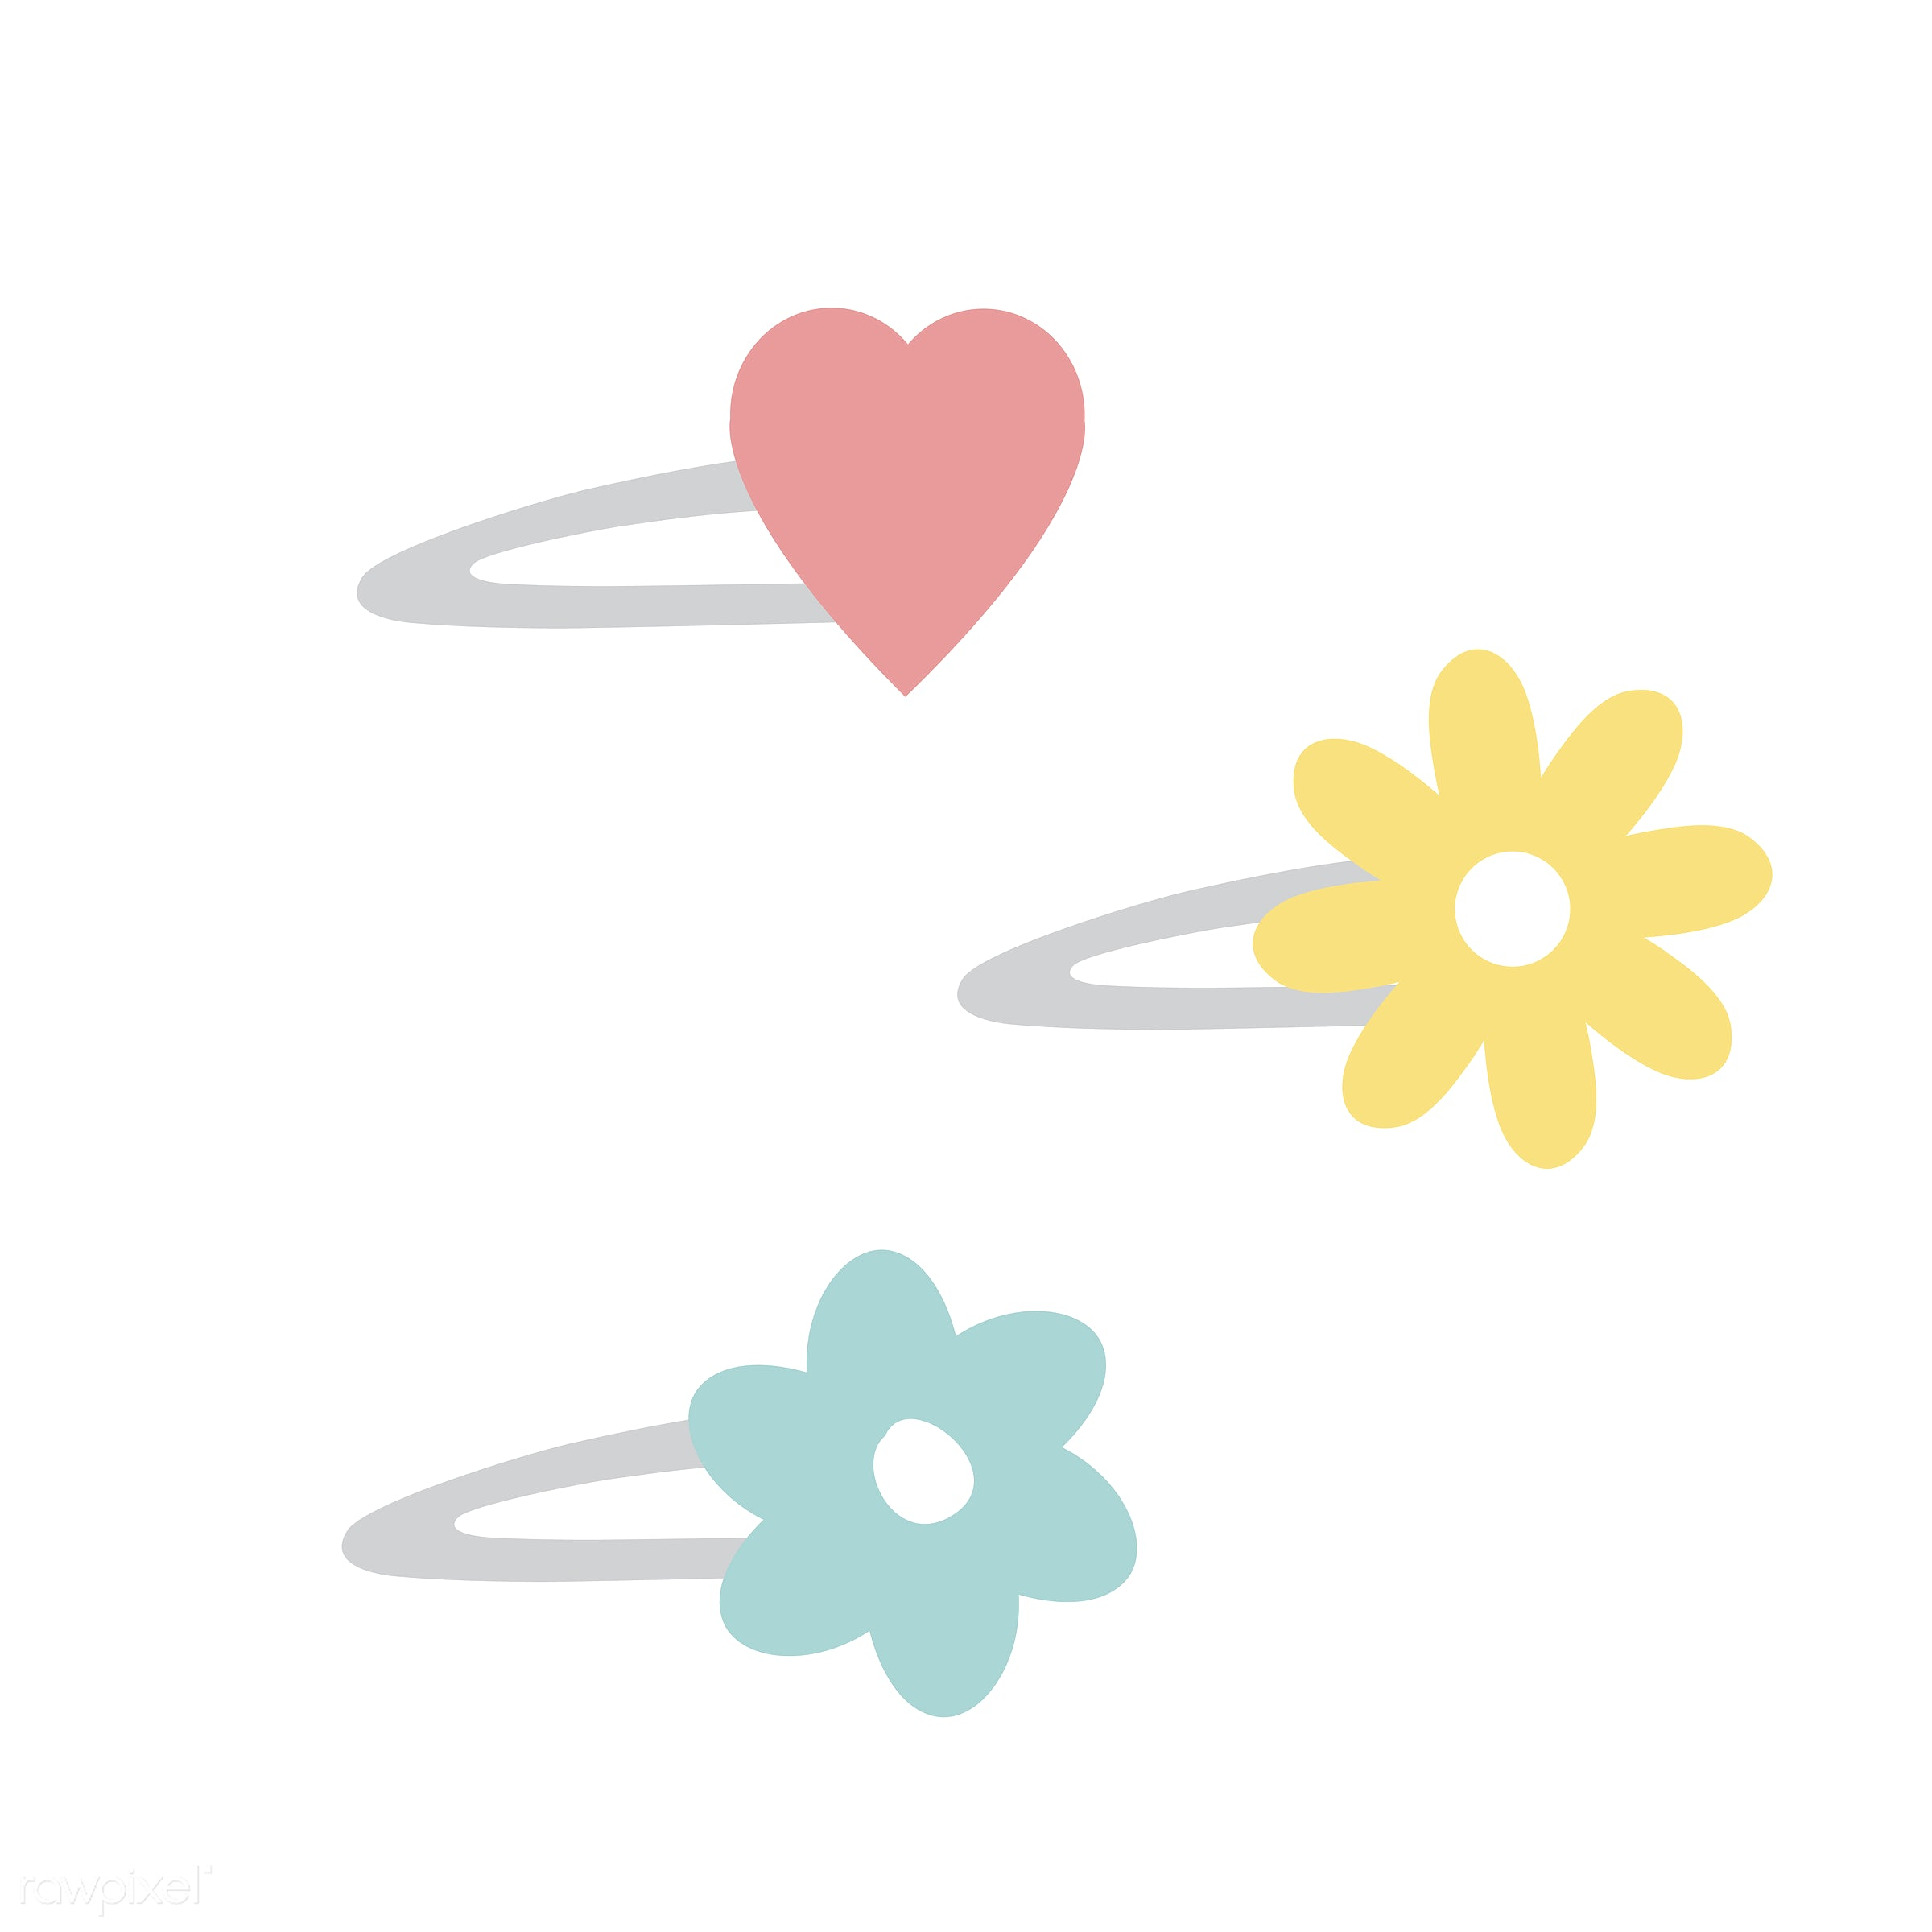 vector, illustration, graphic, cute, sweet, girly, pastel, hairclip, flower, colorful, pastel colored